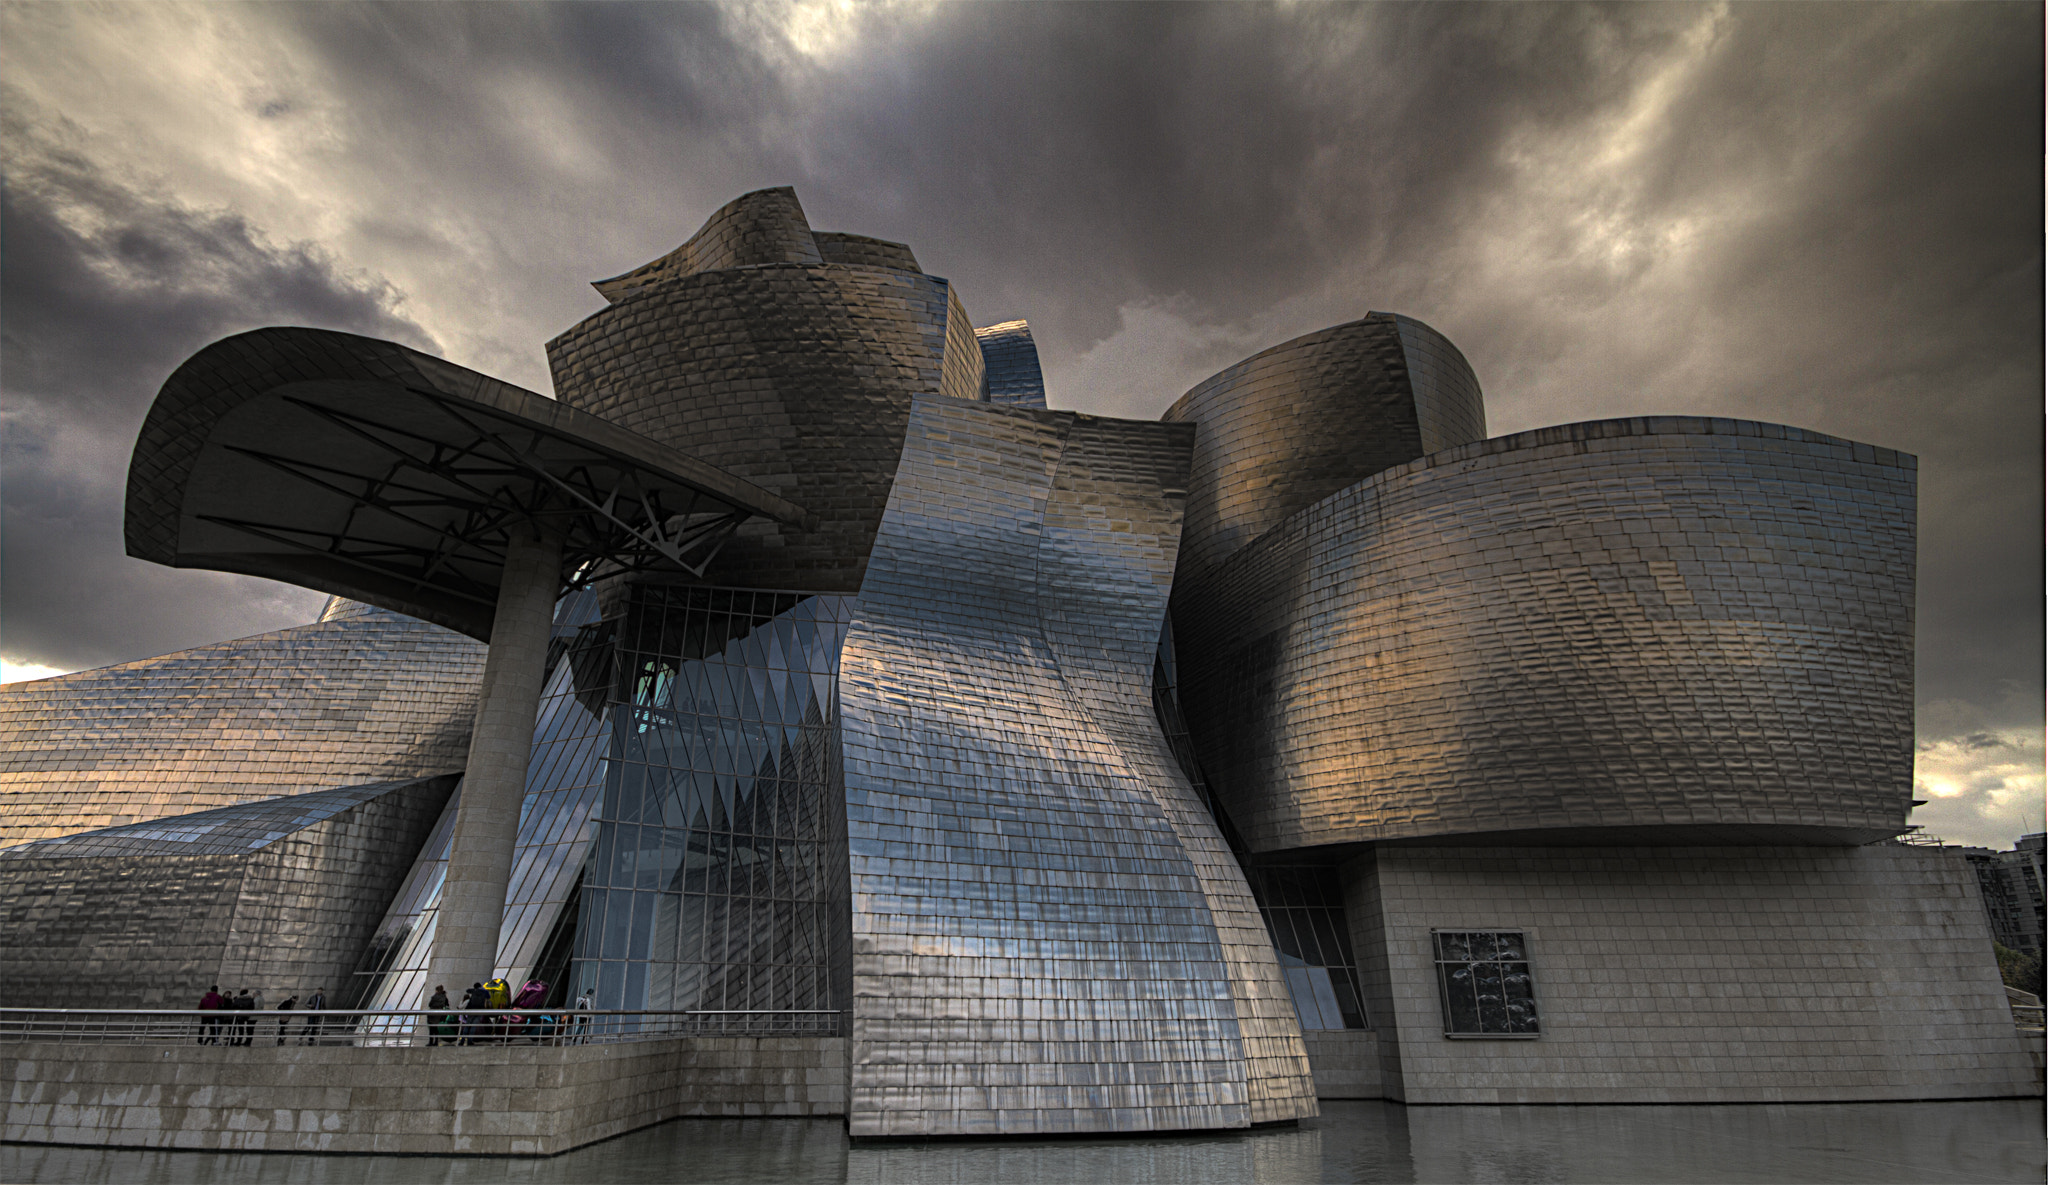 Photograph Gugenheim museum, Bilbao, Spain by Sylvain Millier on 500px